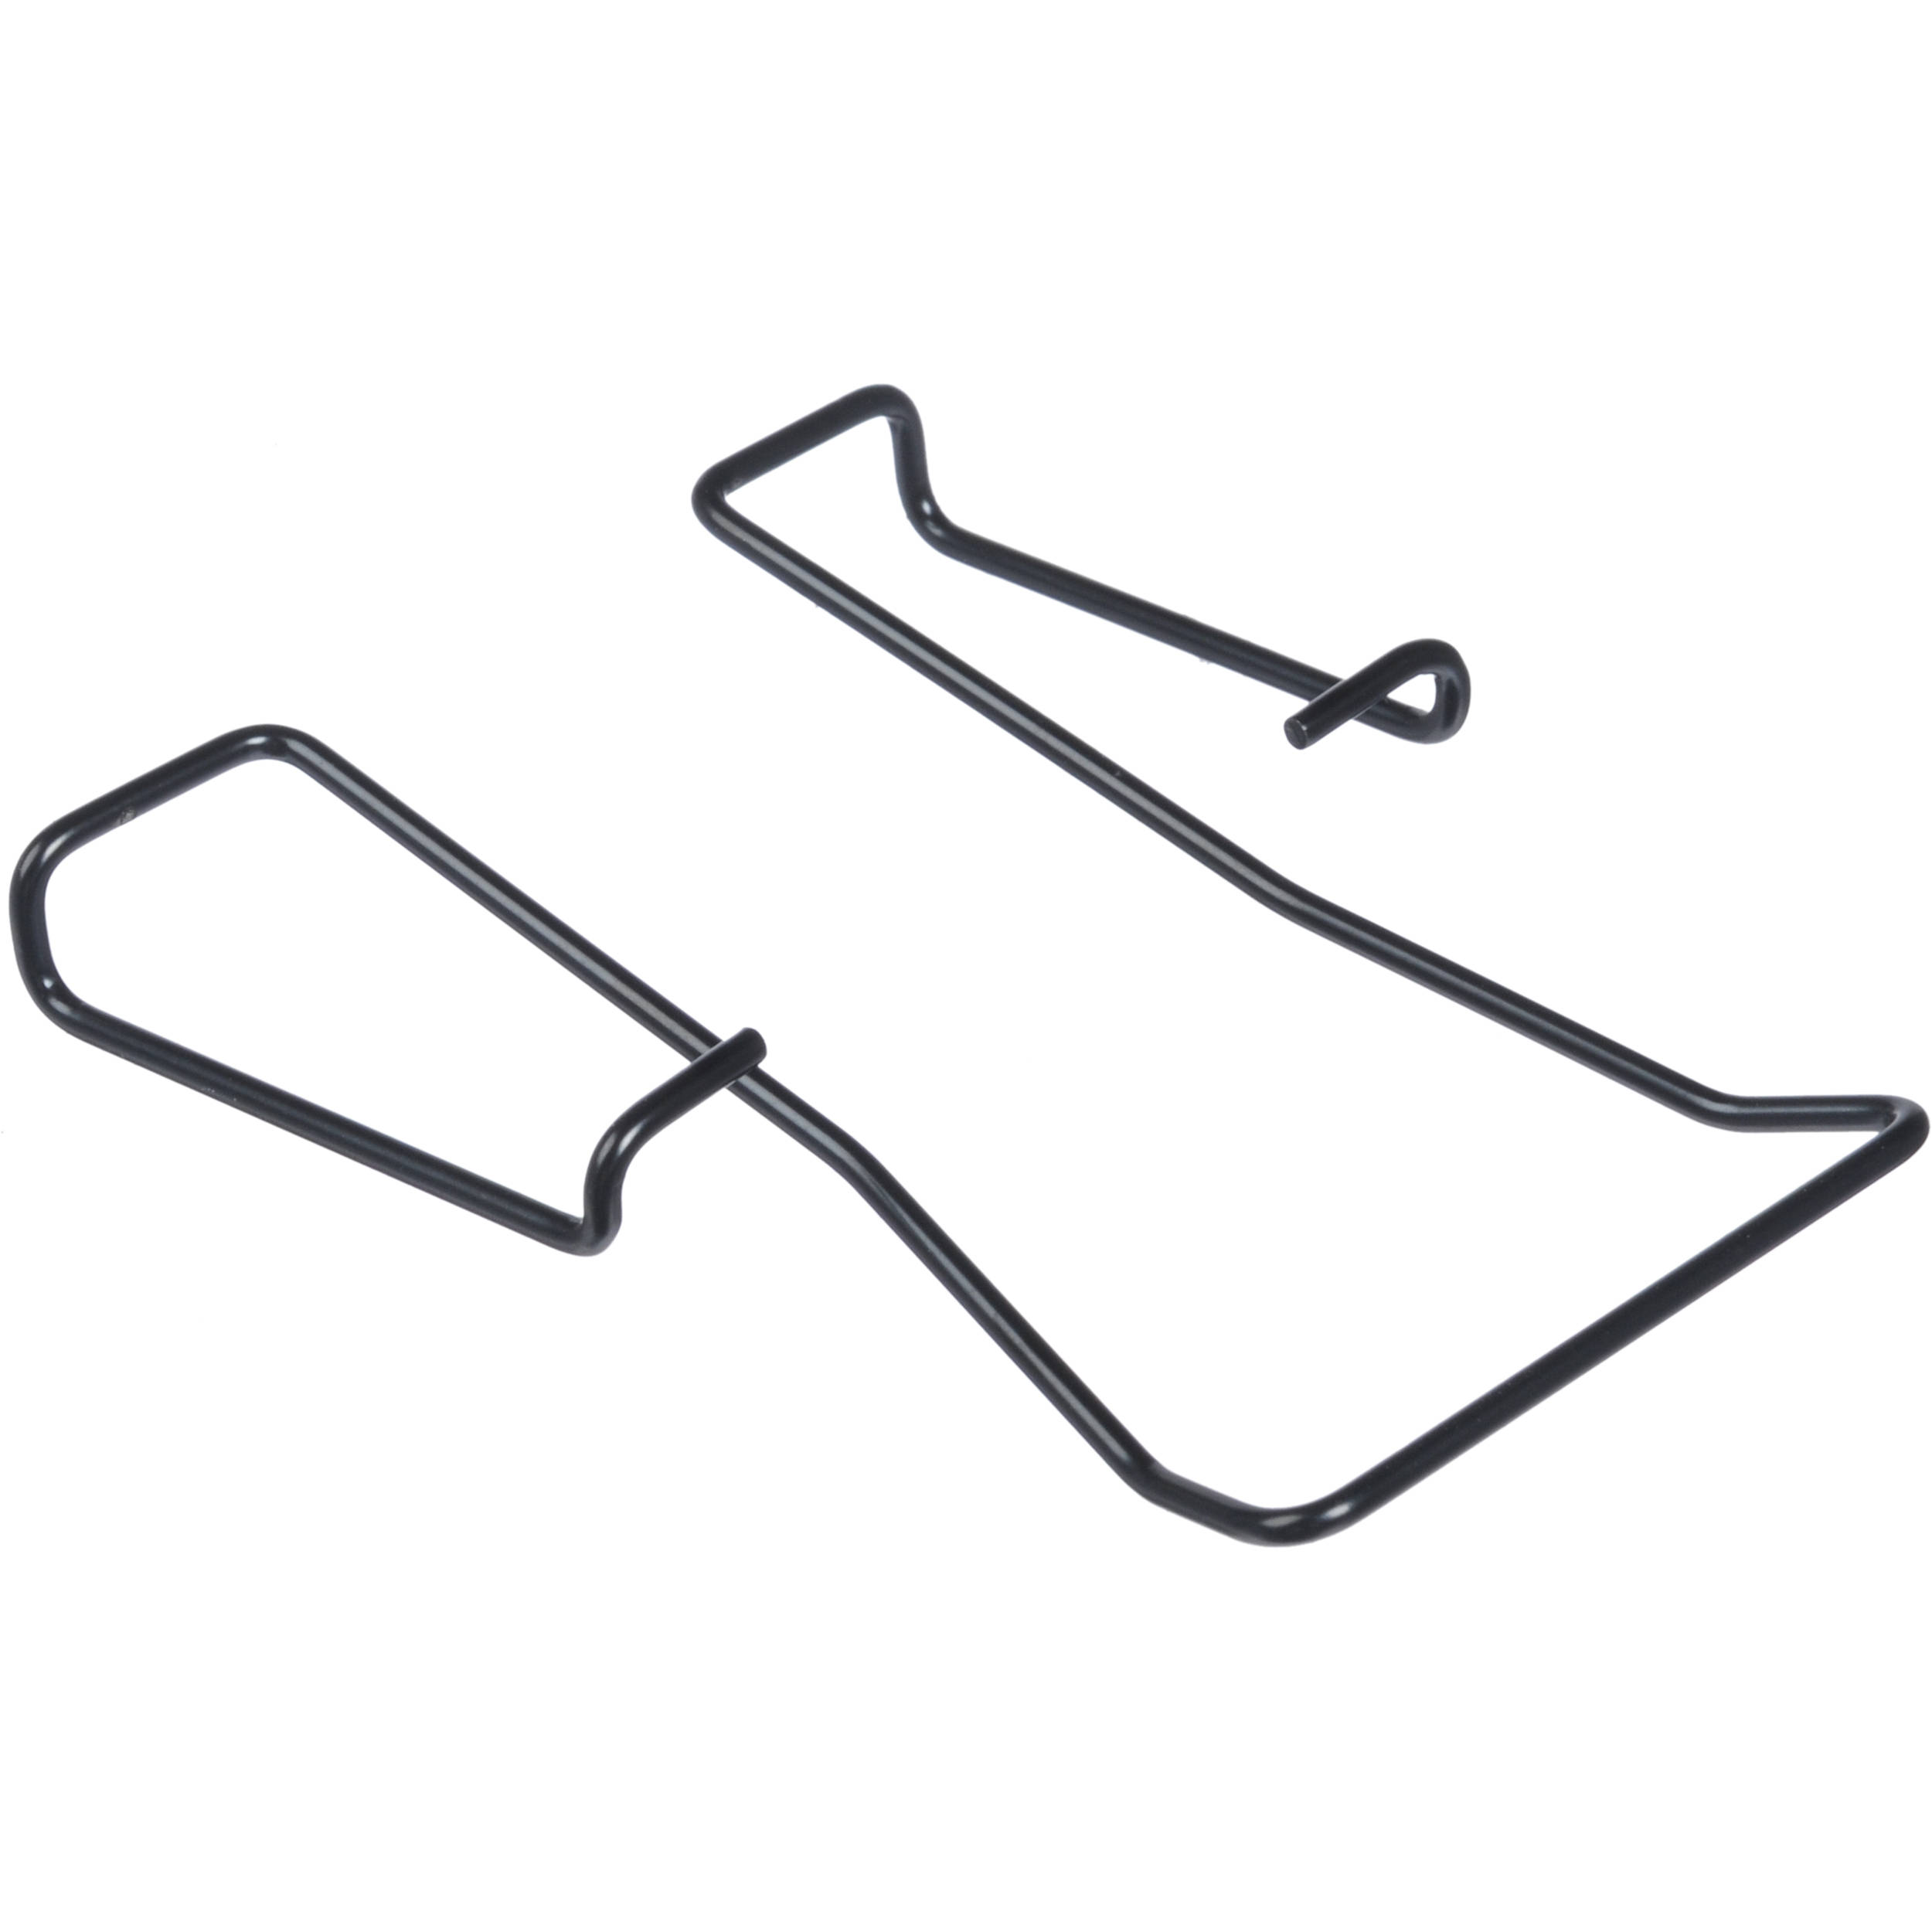 Shure Belt Clip For U1 And ULX1 Bodypack Transmitters 44A8023C